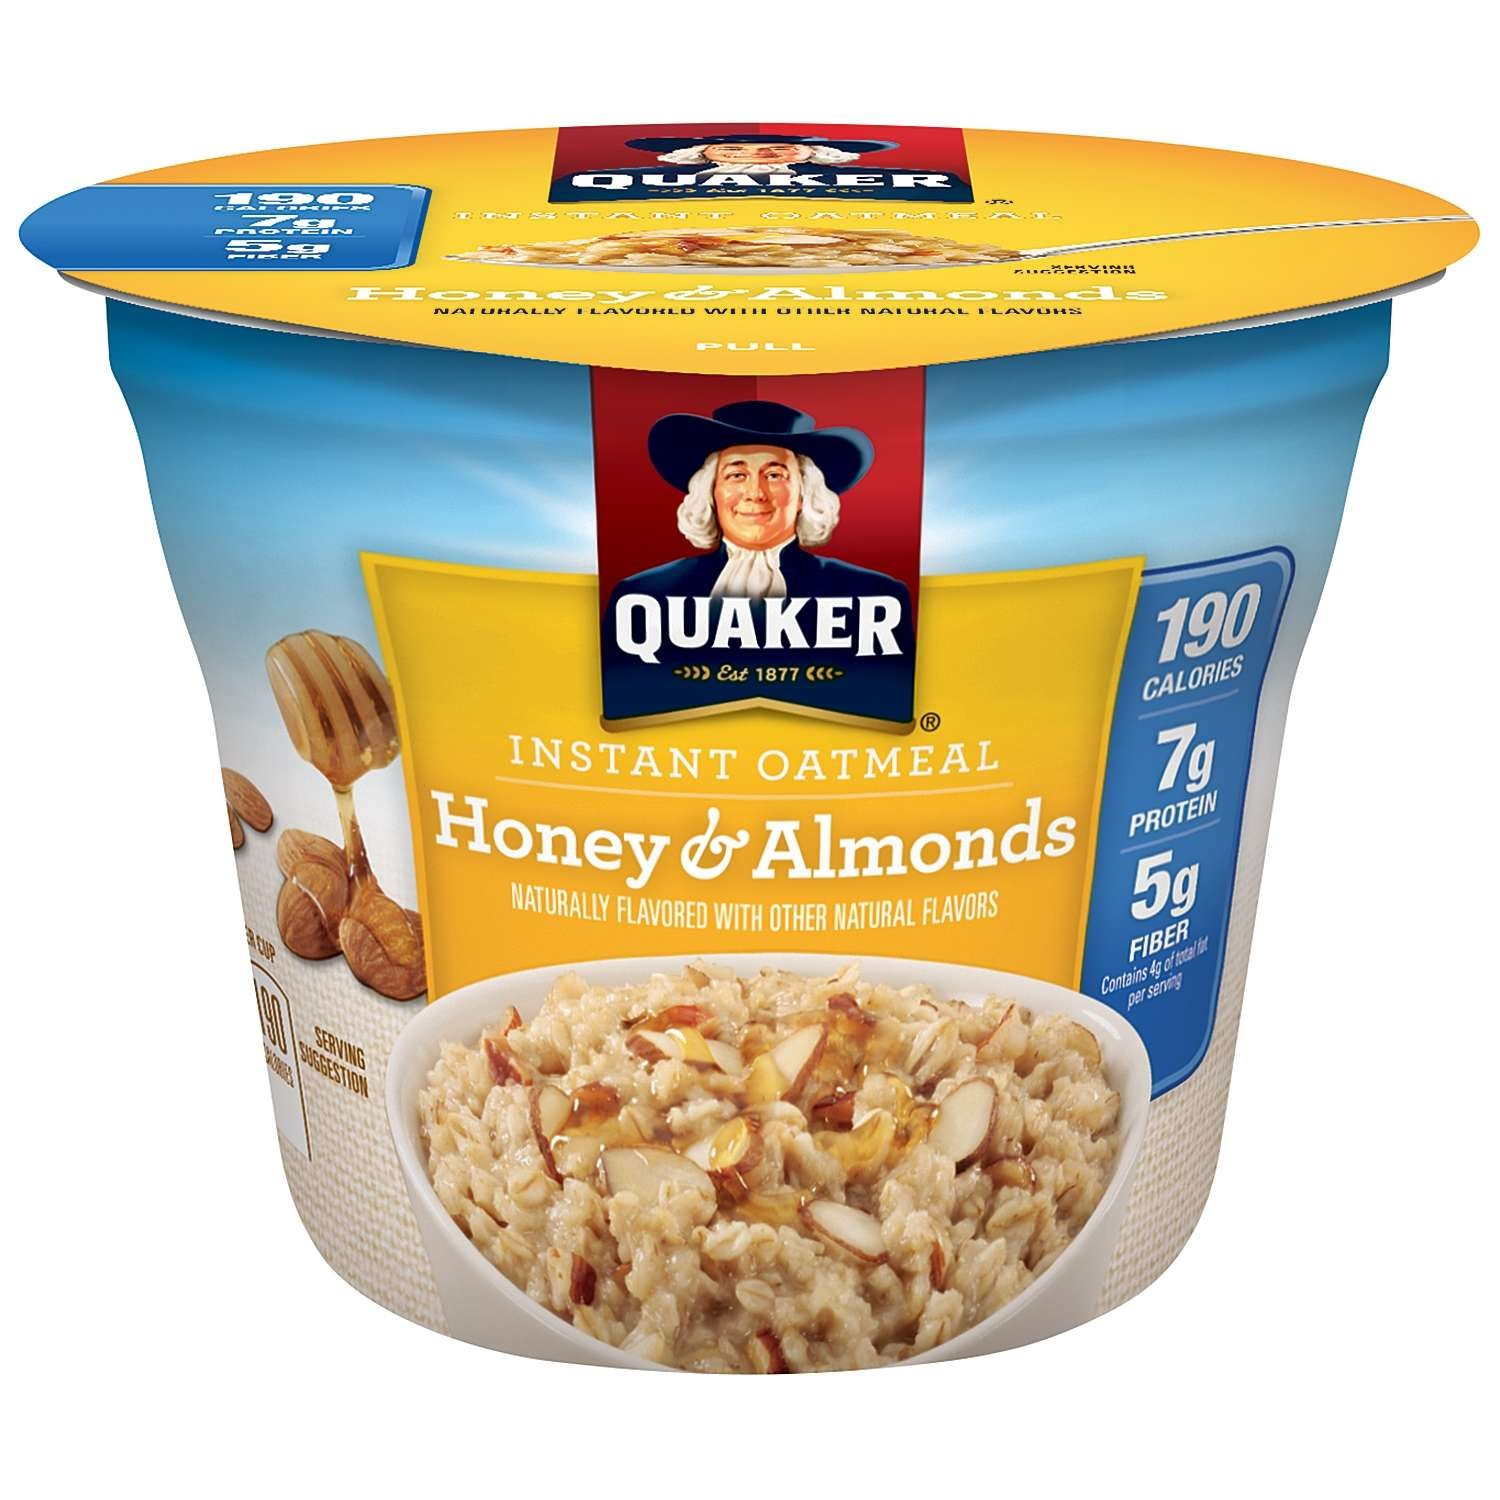 Quaker Instant Quaker Oatmeal Express Cups, Honey Almond Weight Control, 1.76 Oz (Pack of 12)